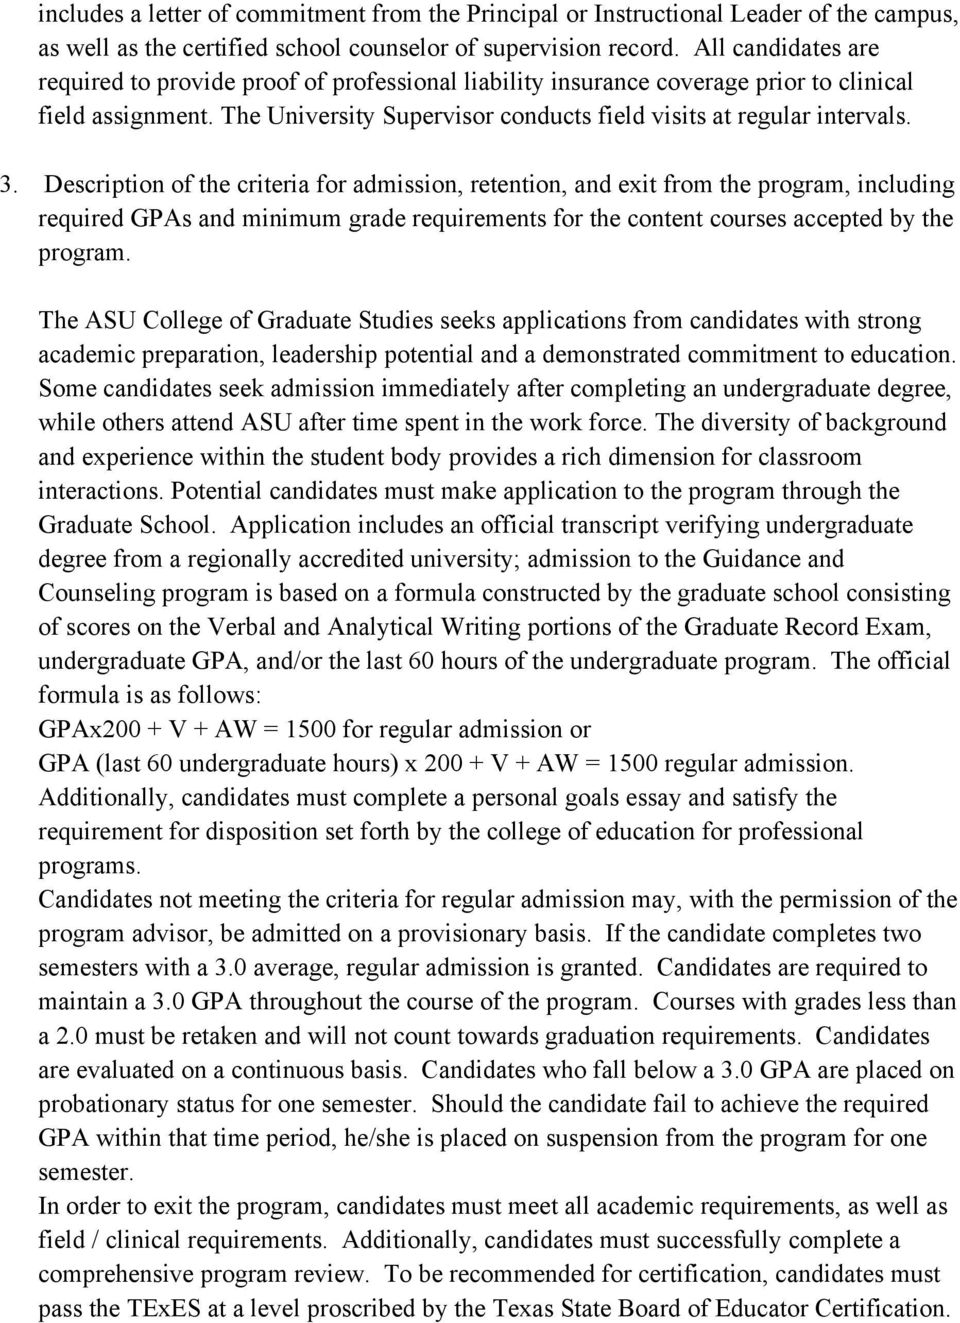 Description of the criteria for admission, retention, and exit from the program, including required GPAs and minimum grade requirements for the content courses accepted by the program.